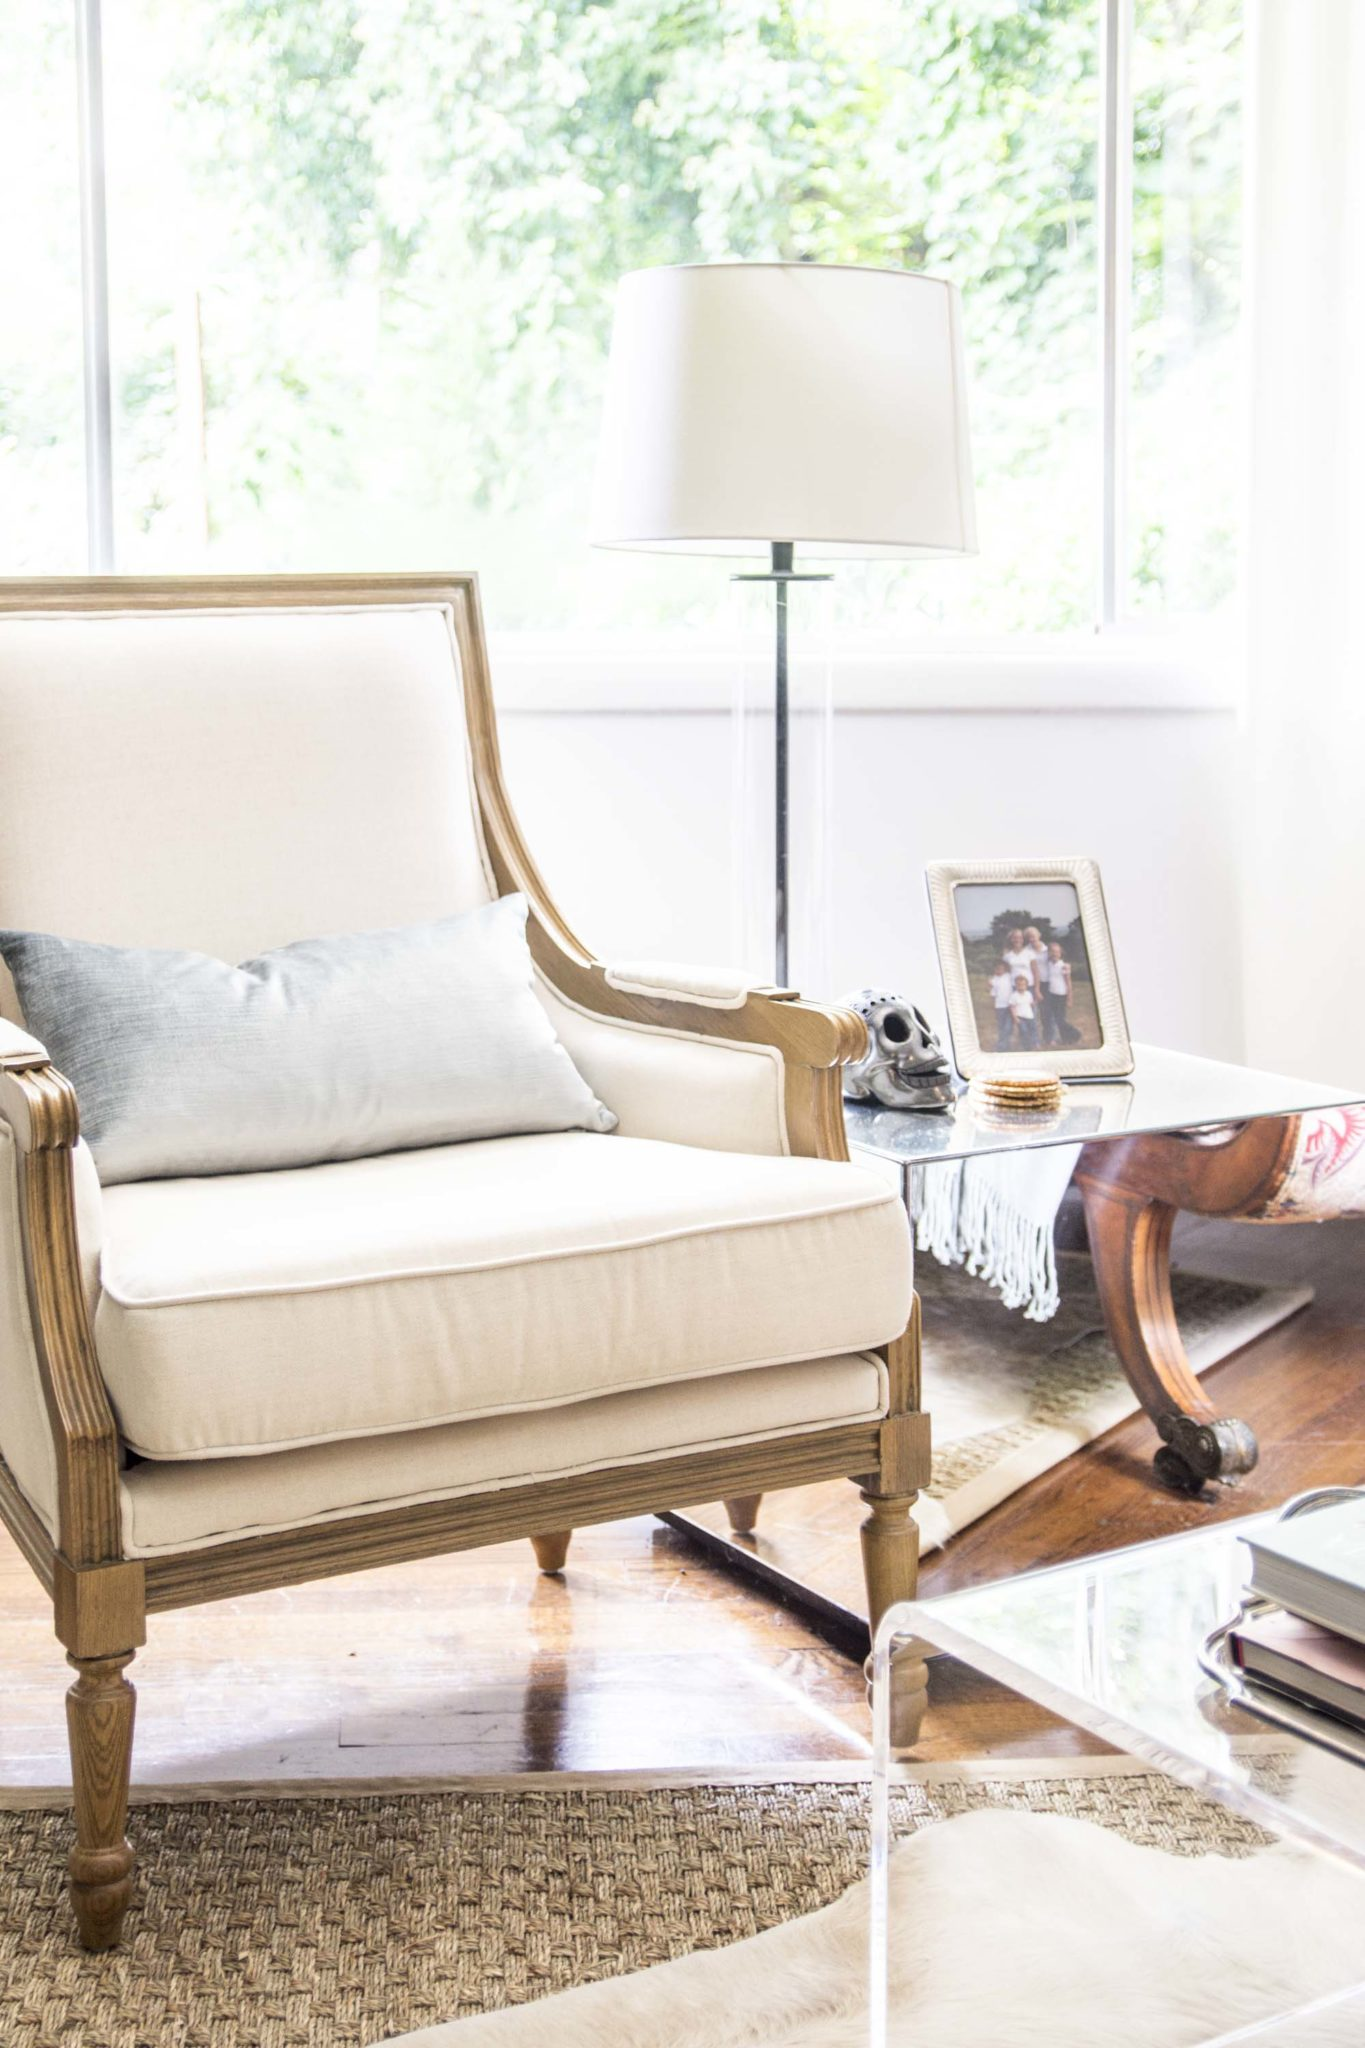 Our Summer Living Room Refresh - Thou Swell